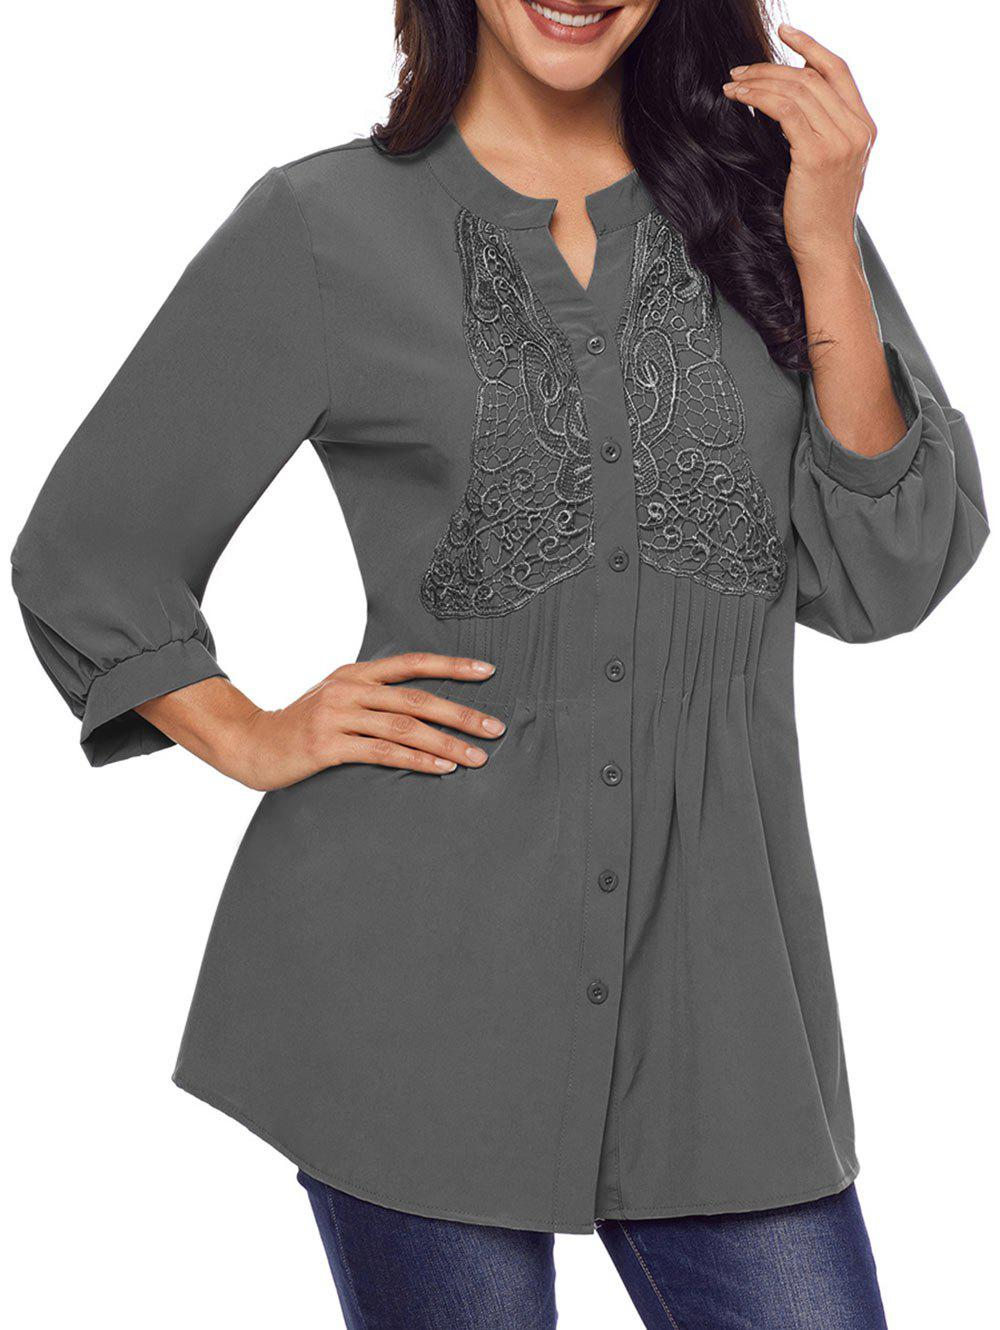 Lace Panel Split Neck Pintuck Tunic Blouse - GRAY S